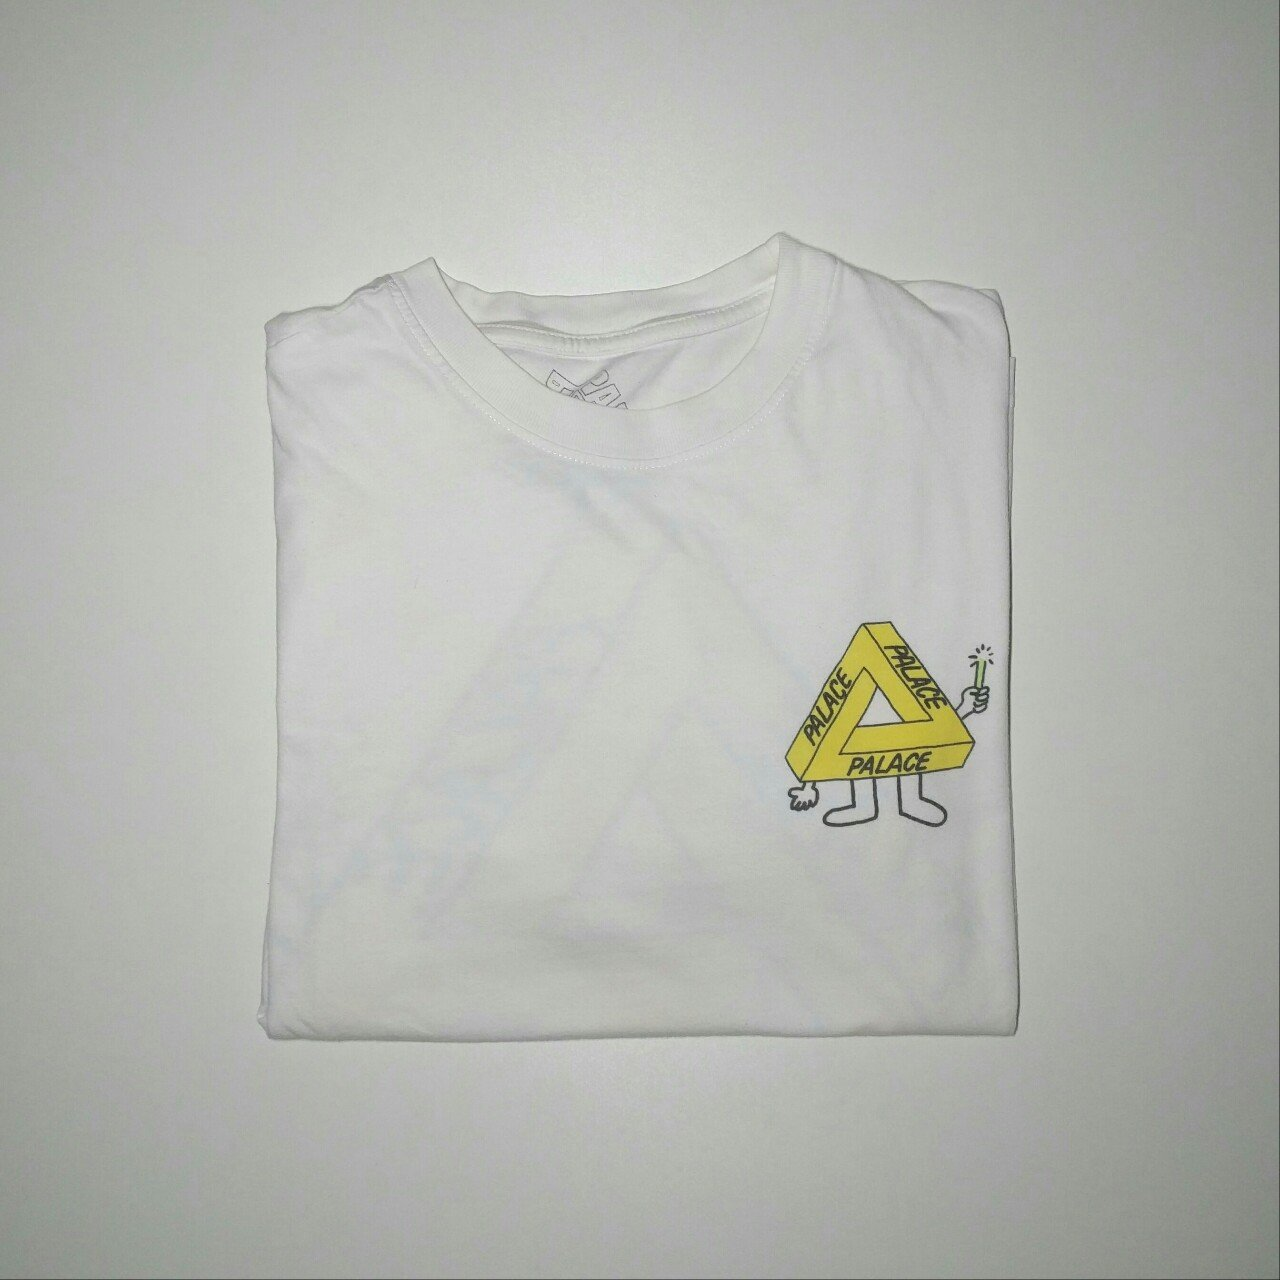 3a647a6af66f Palace Glow Stick T-shirt in White. Size Small but could fit - Depop